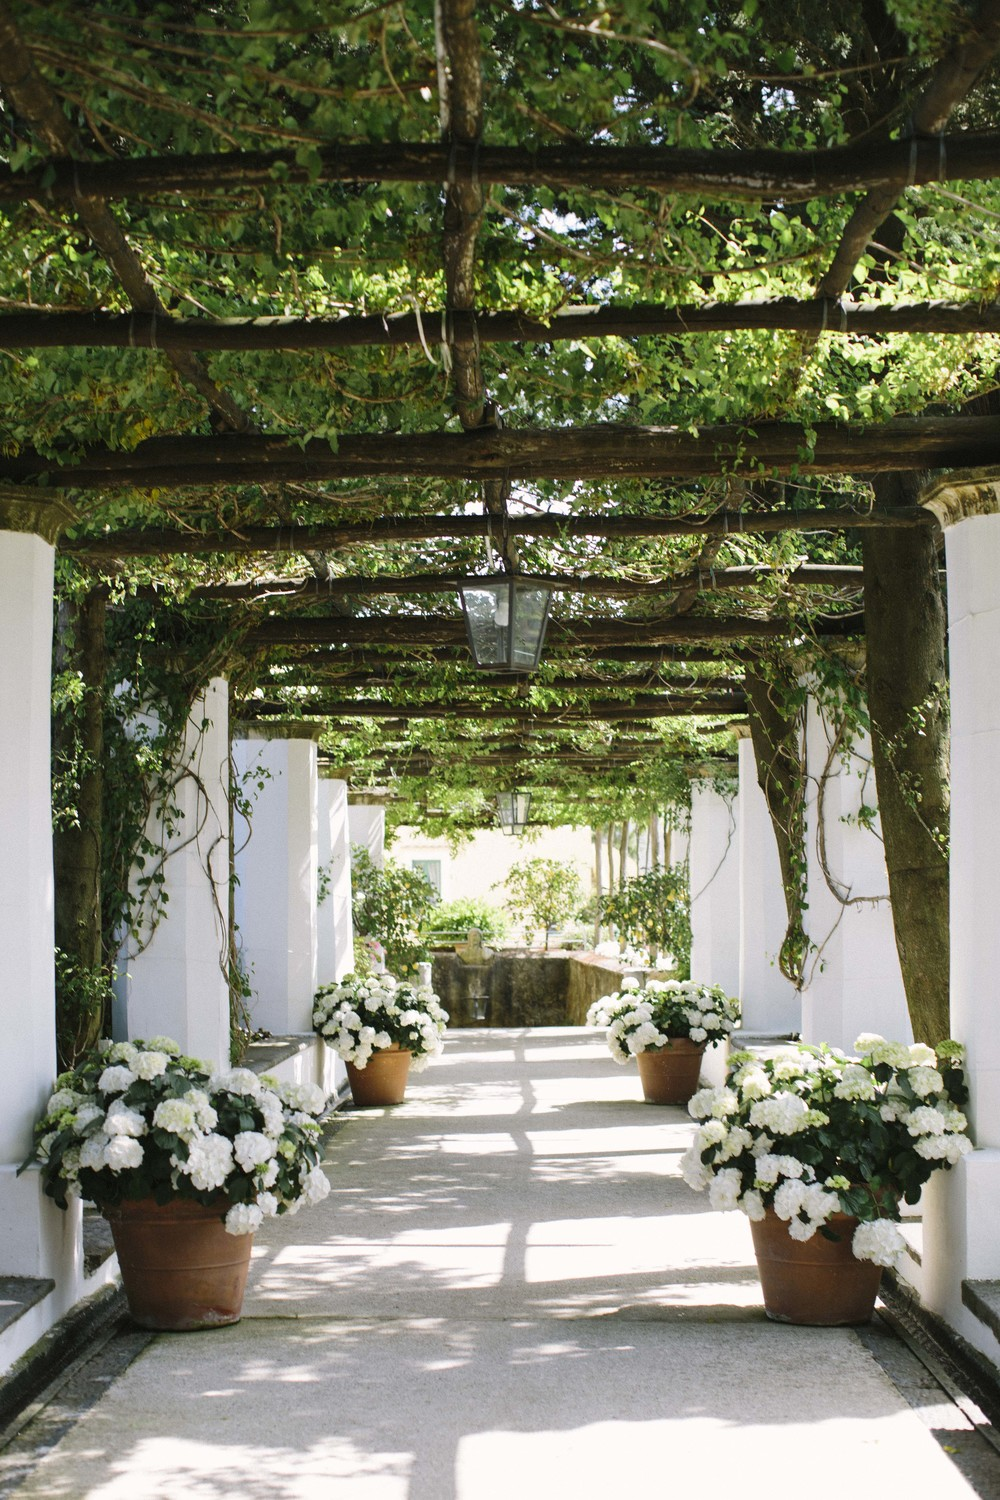 Here is the walkway to the pool area pictured below for our tour guide's other favorite hotel in Amalfi: the Hotel Caruso. Don't worry, this is just where Mark Zuckerburg got married.